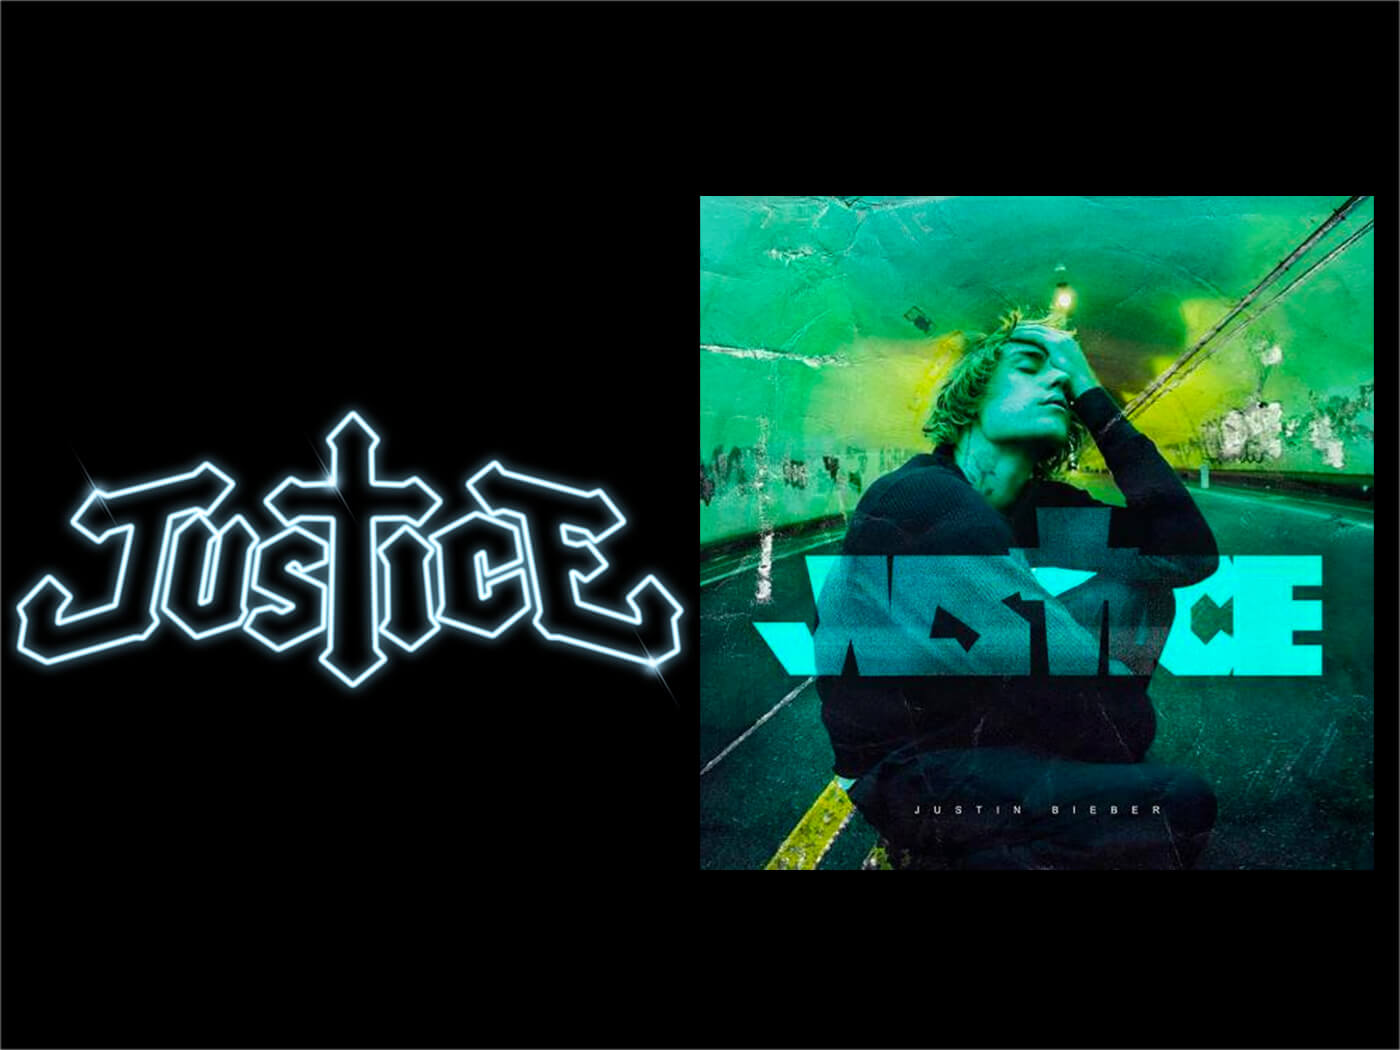 Justice Logo and Justin Bieber's Justice cover